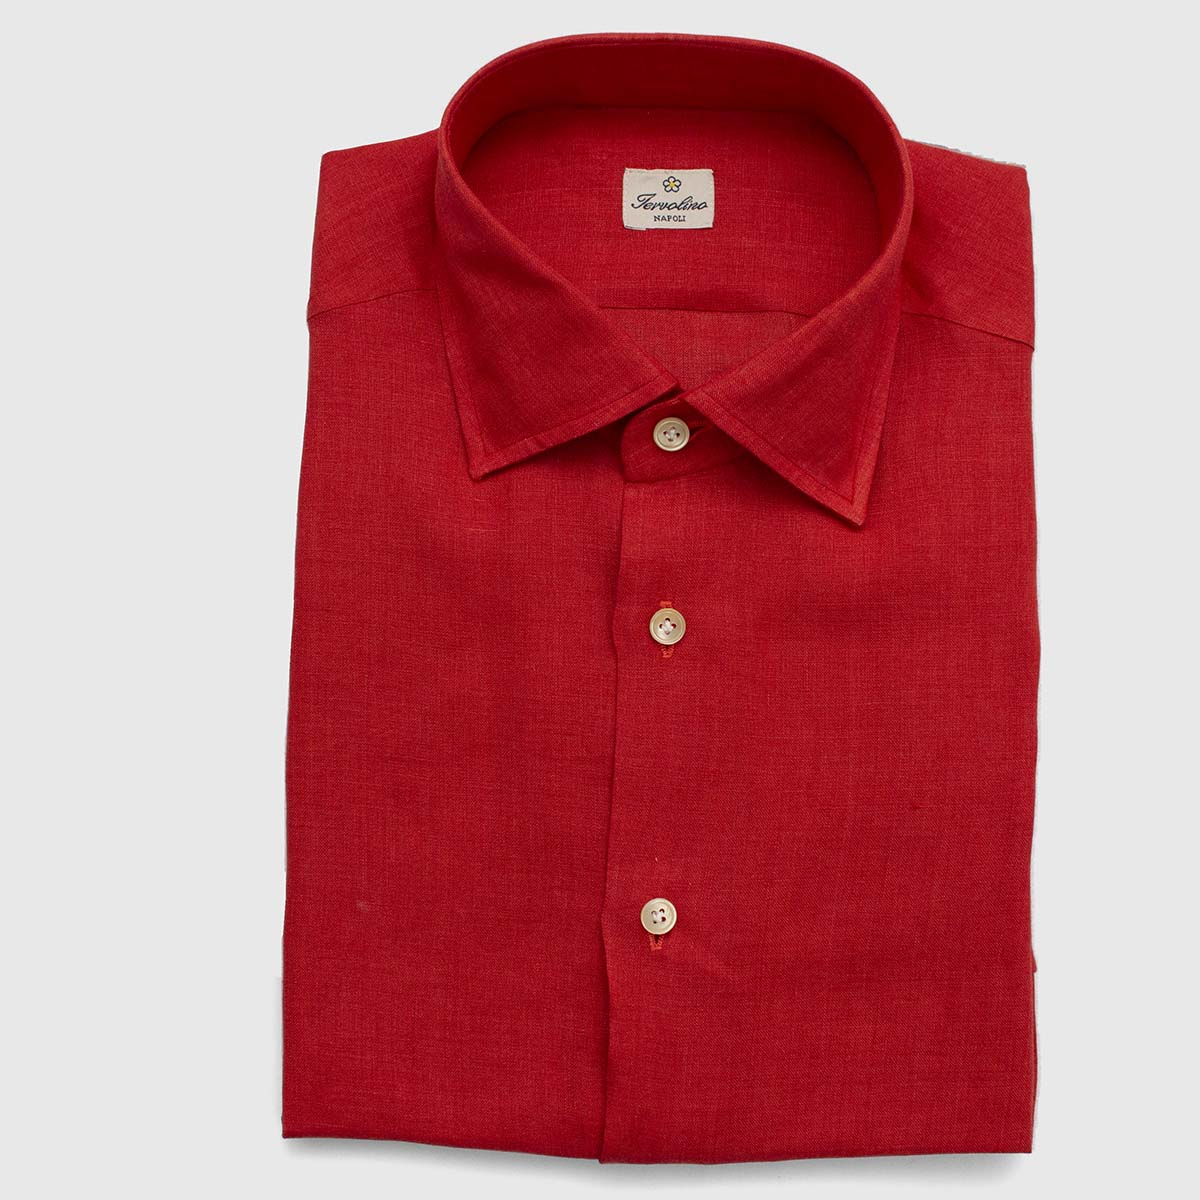 100% Red Linen shirt made with 12 steps by hand